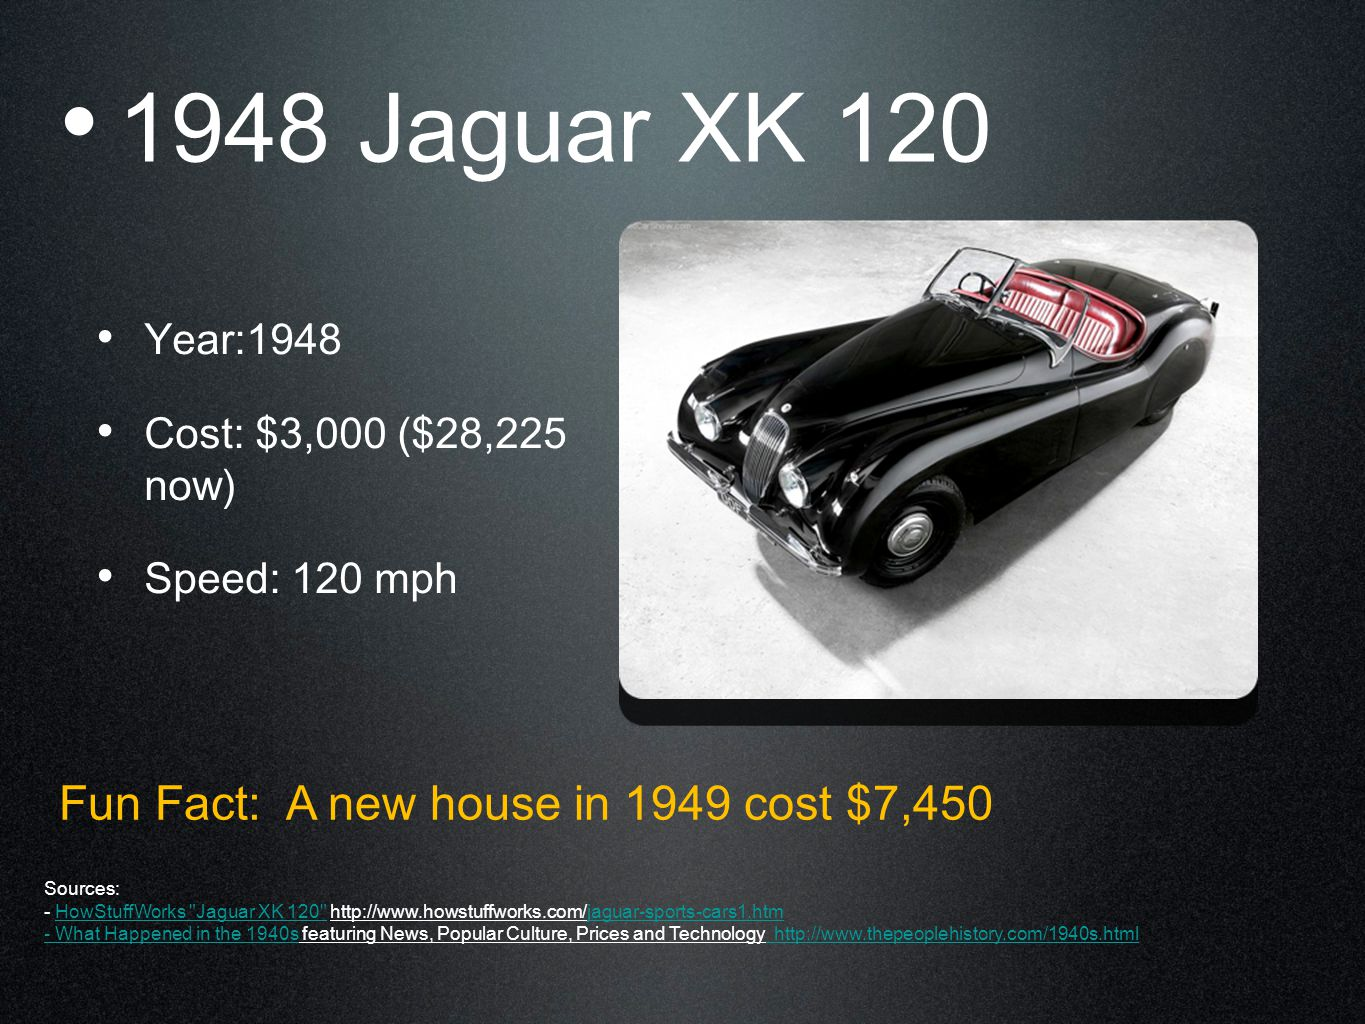 1948 Jaguar XK 120 Year:1948 Cost: $3,000 ($28,225 now) Speed: 120 mph Fun Fact: A new house in 1949 cost $7,450 Sources: - HowStuffWorks Jaguar XK 120 http://www.howstuffworks.com/jaguar-sports-cars1.htmHowStuffWorks Jaguar XK 120 jaguar-sports-cars1.htm - What Happened in the 1940s- What Happened in the 1940s featuring News, Popular Culture, Prices and Technology http://www.thepeoplehistory.com/1940s.html http://www.thepeoplehistory.com/1940s.html